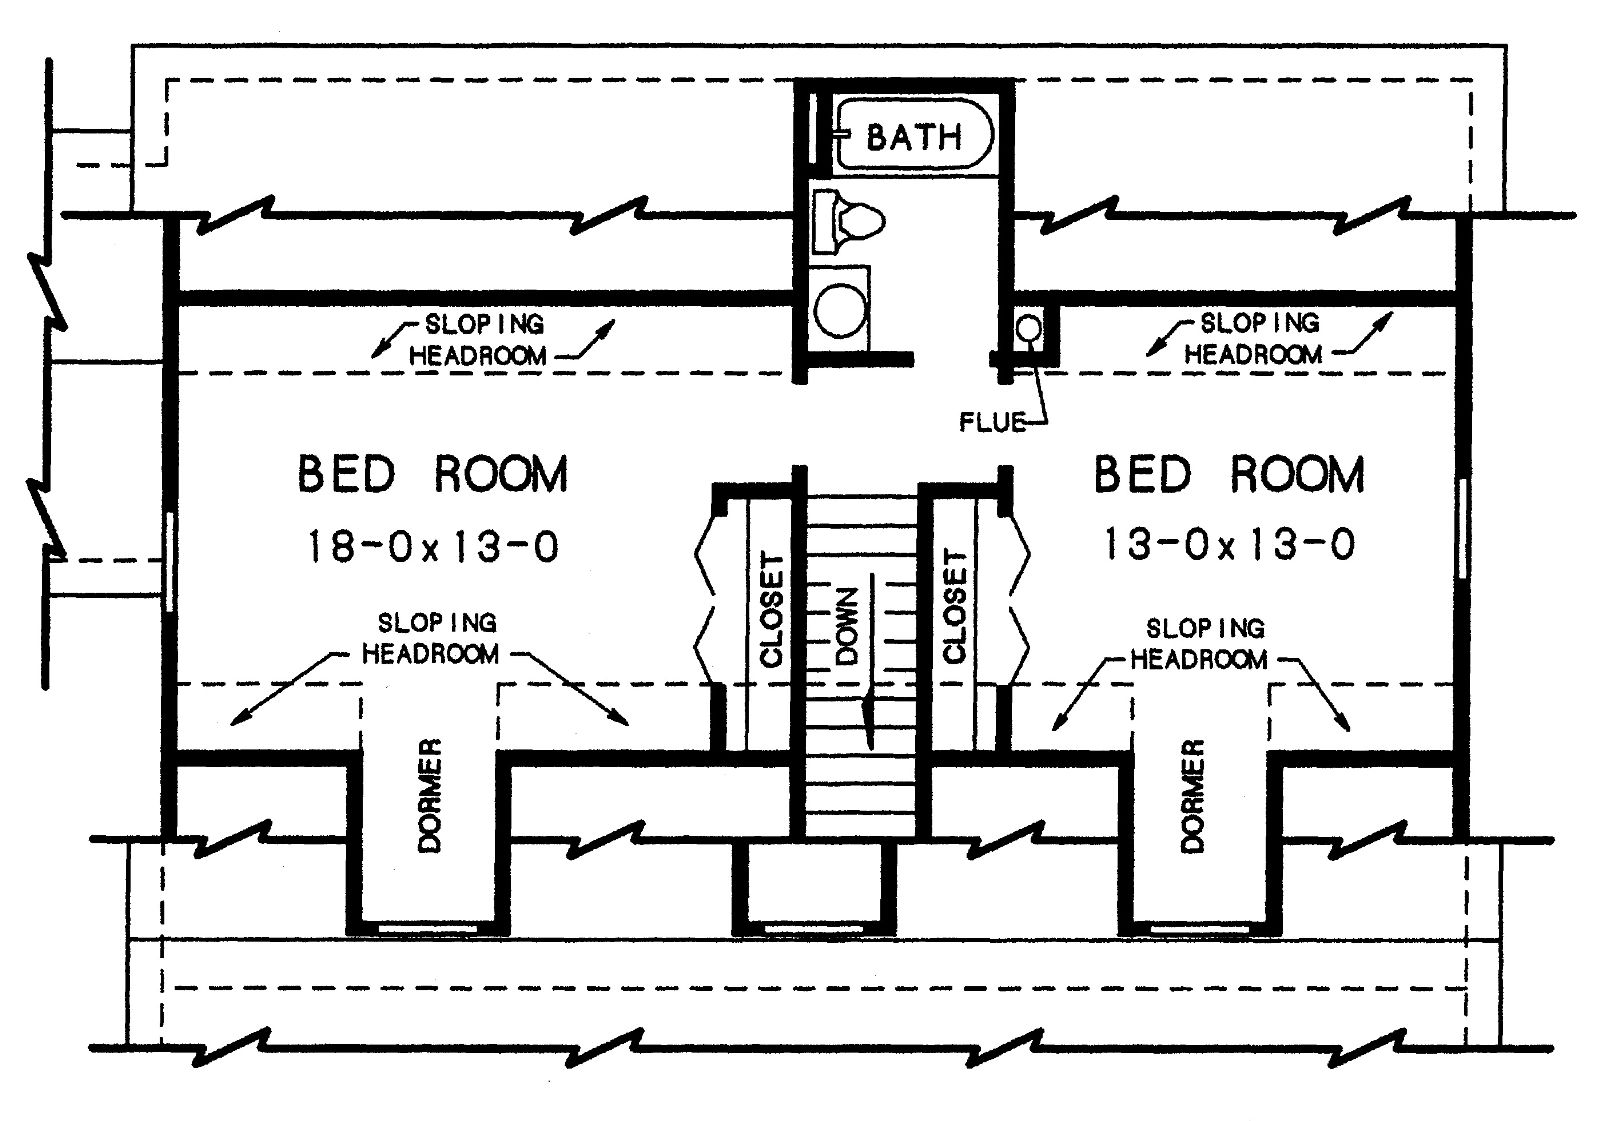 Second Floor Floor Plans first floor second floor 2nd Floor Plan